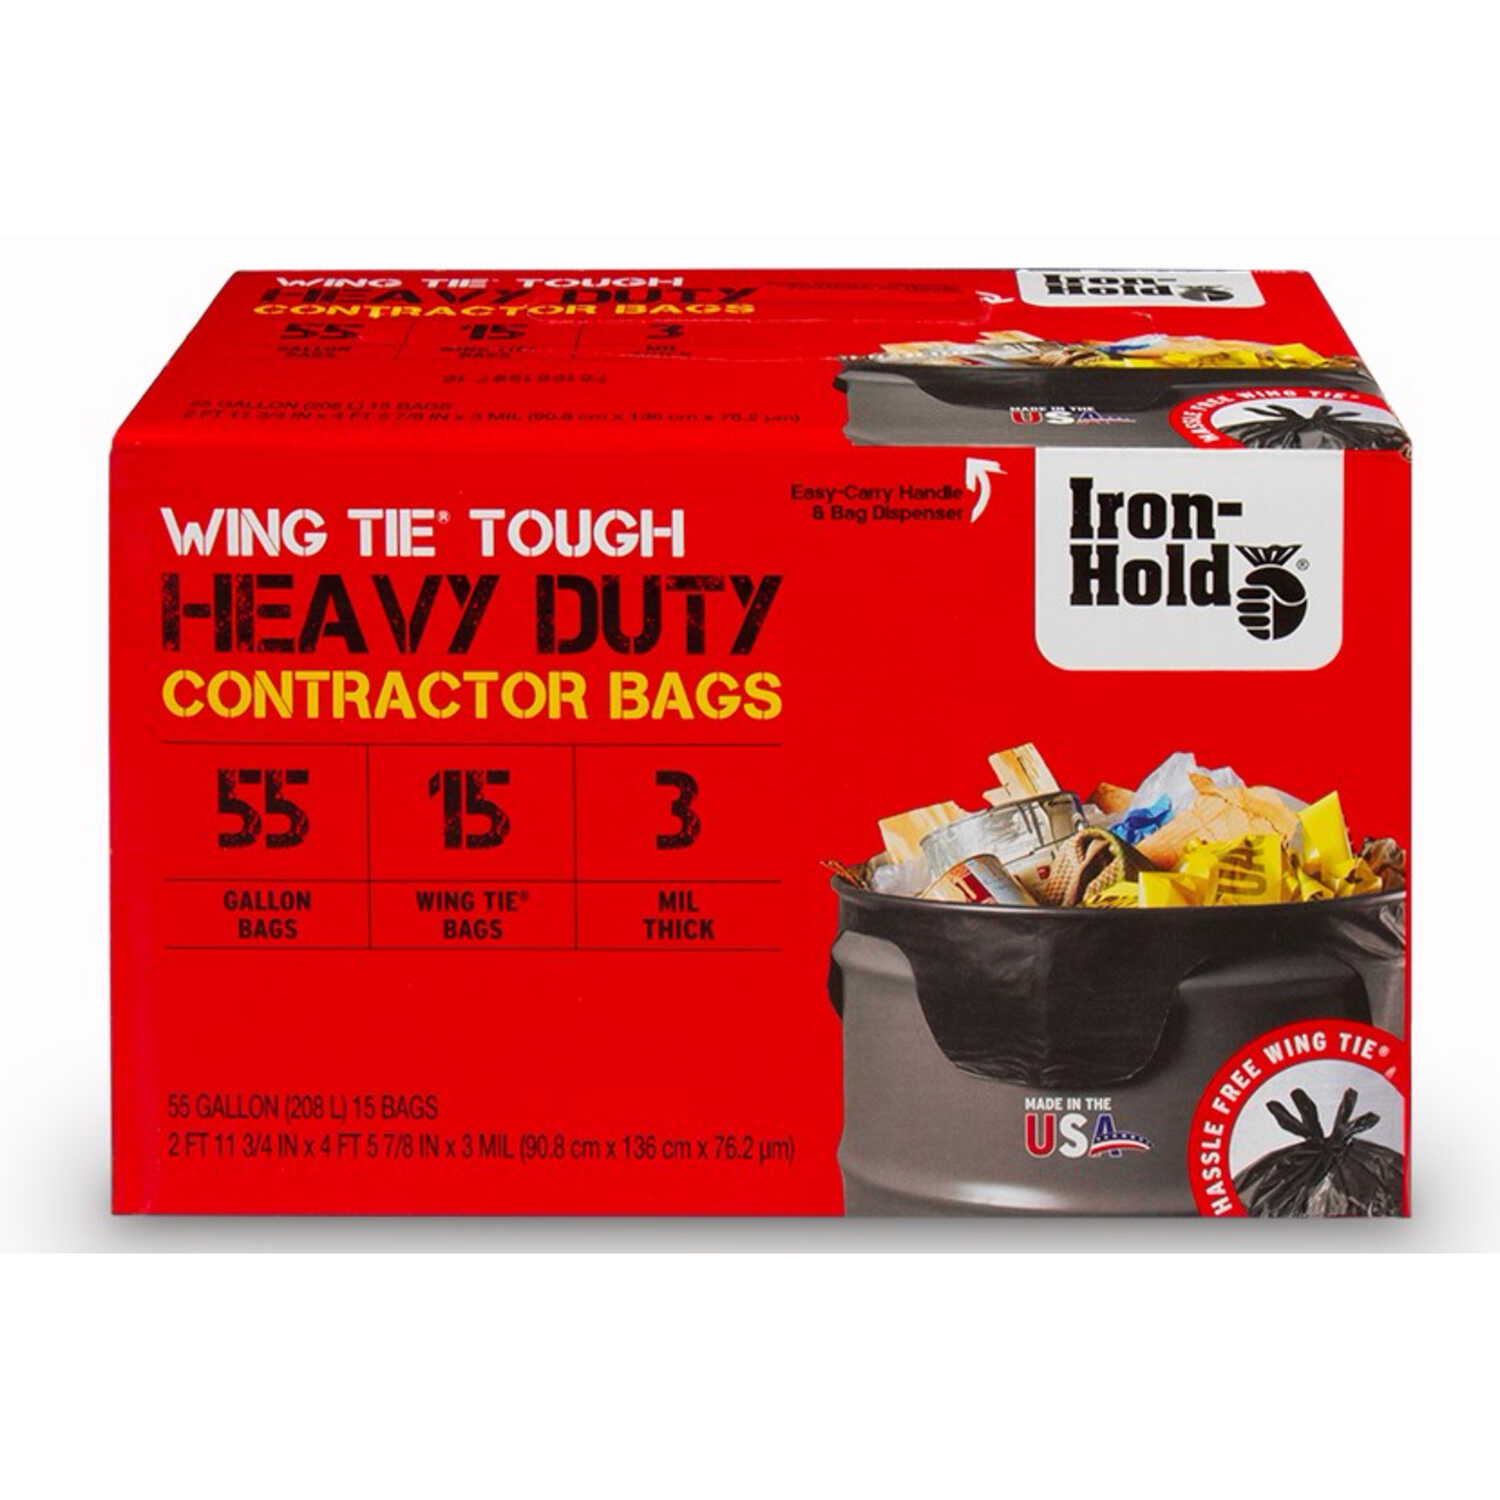 4b6551b994c41 Iron Hold 55 gal. Contractor Bags Twist Tie 15 pk - Ace Hardware